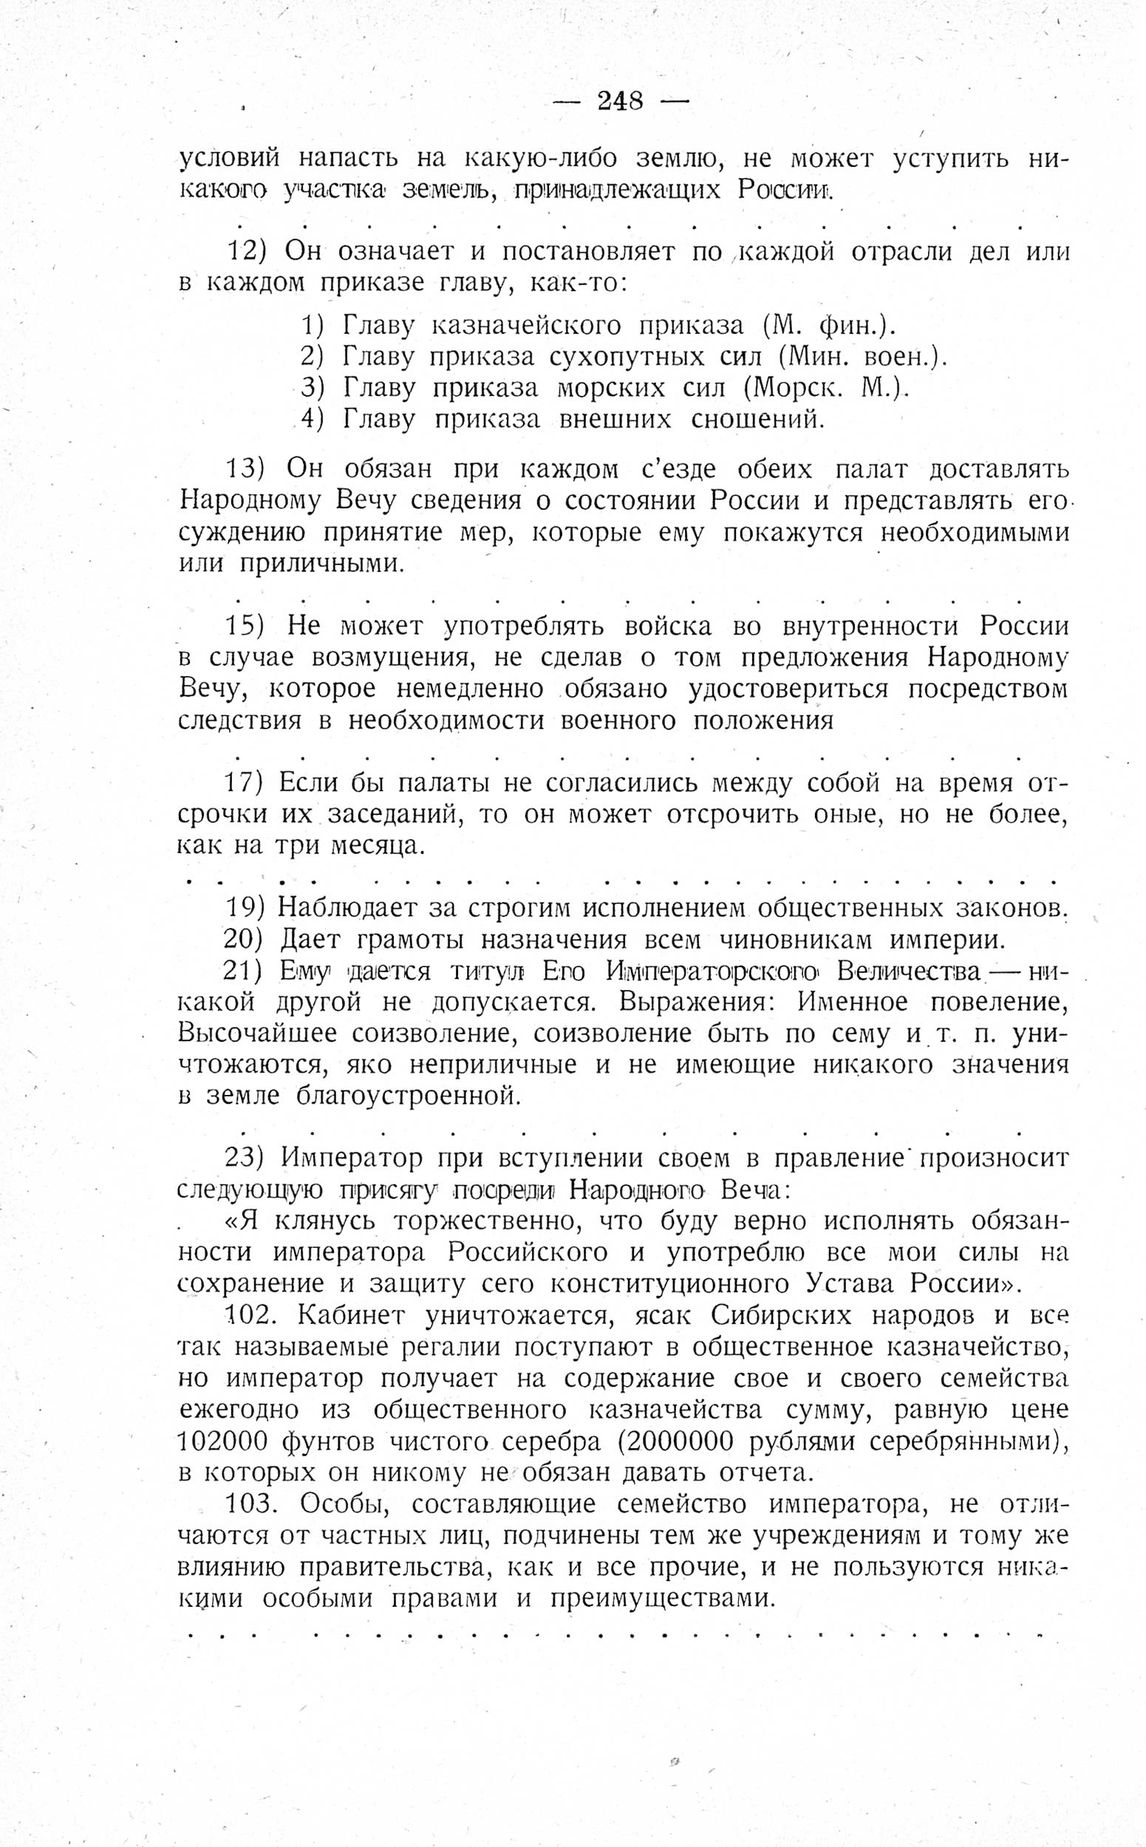 http://elib.shpl.ru/pages/625831/zooms/7